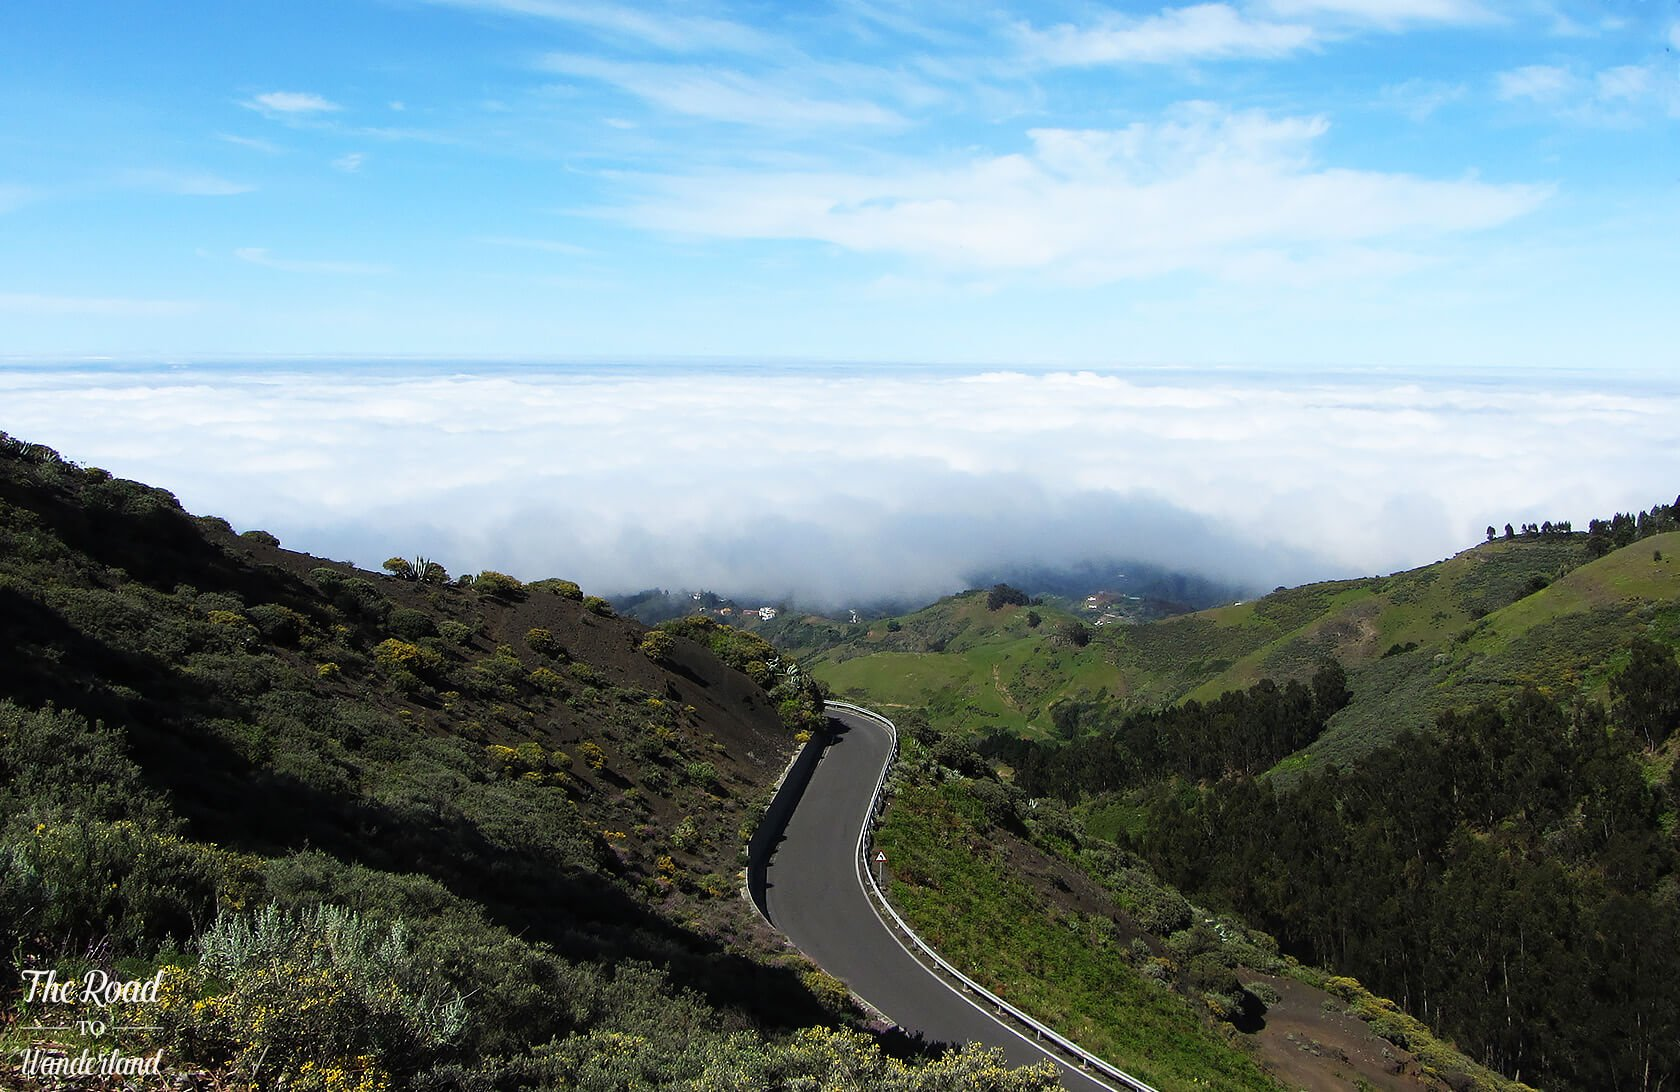 Landscapes of Gran Canaria: Low-lying cloud in Gran Canaria